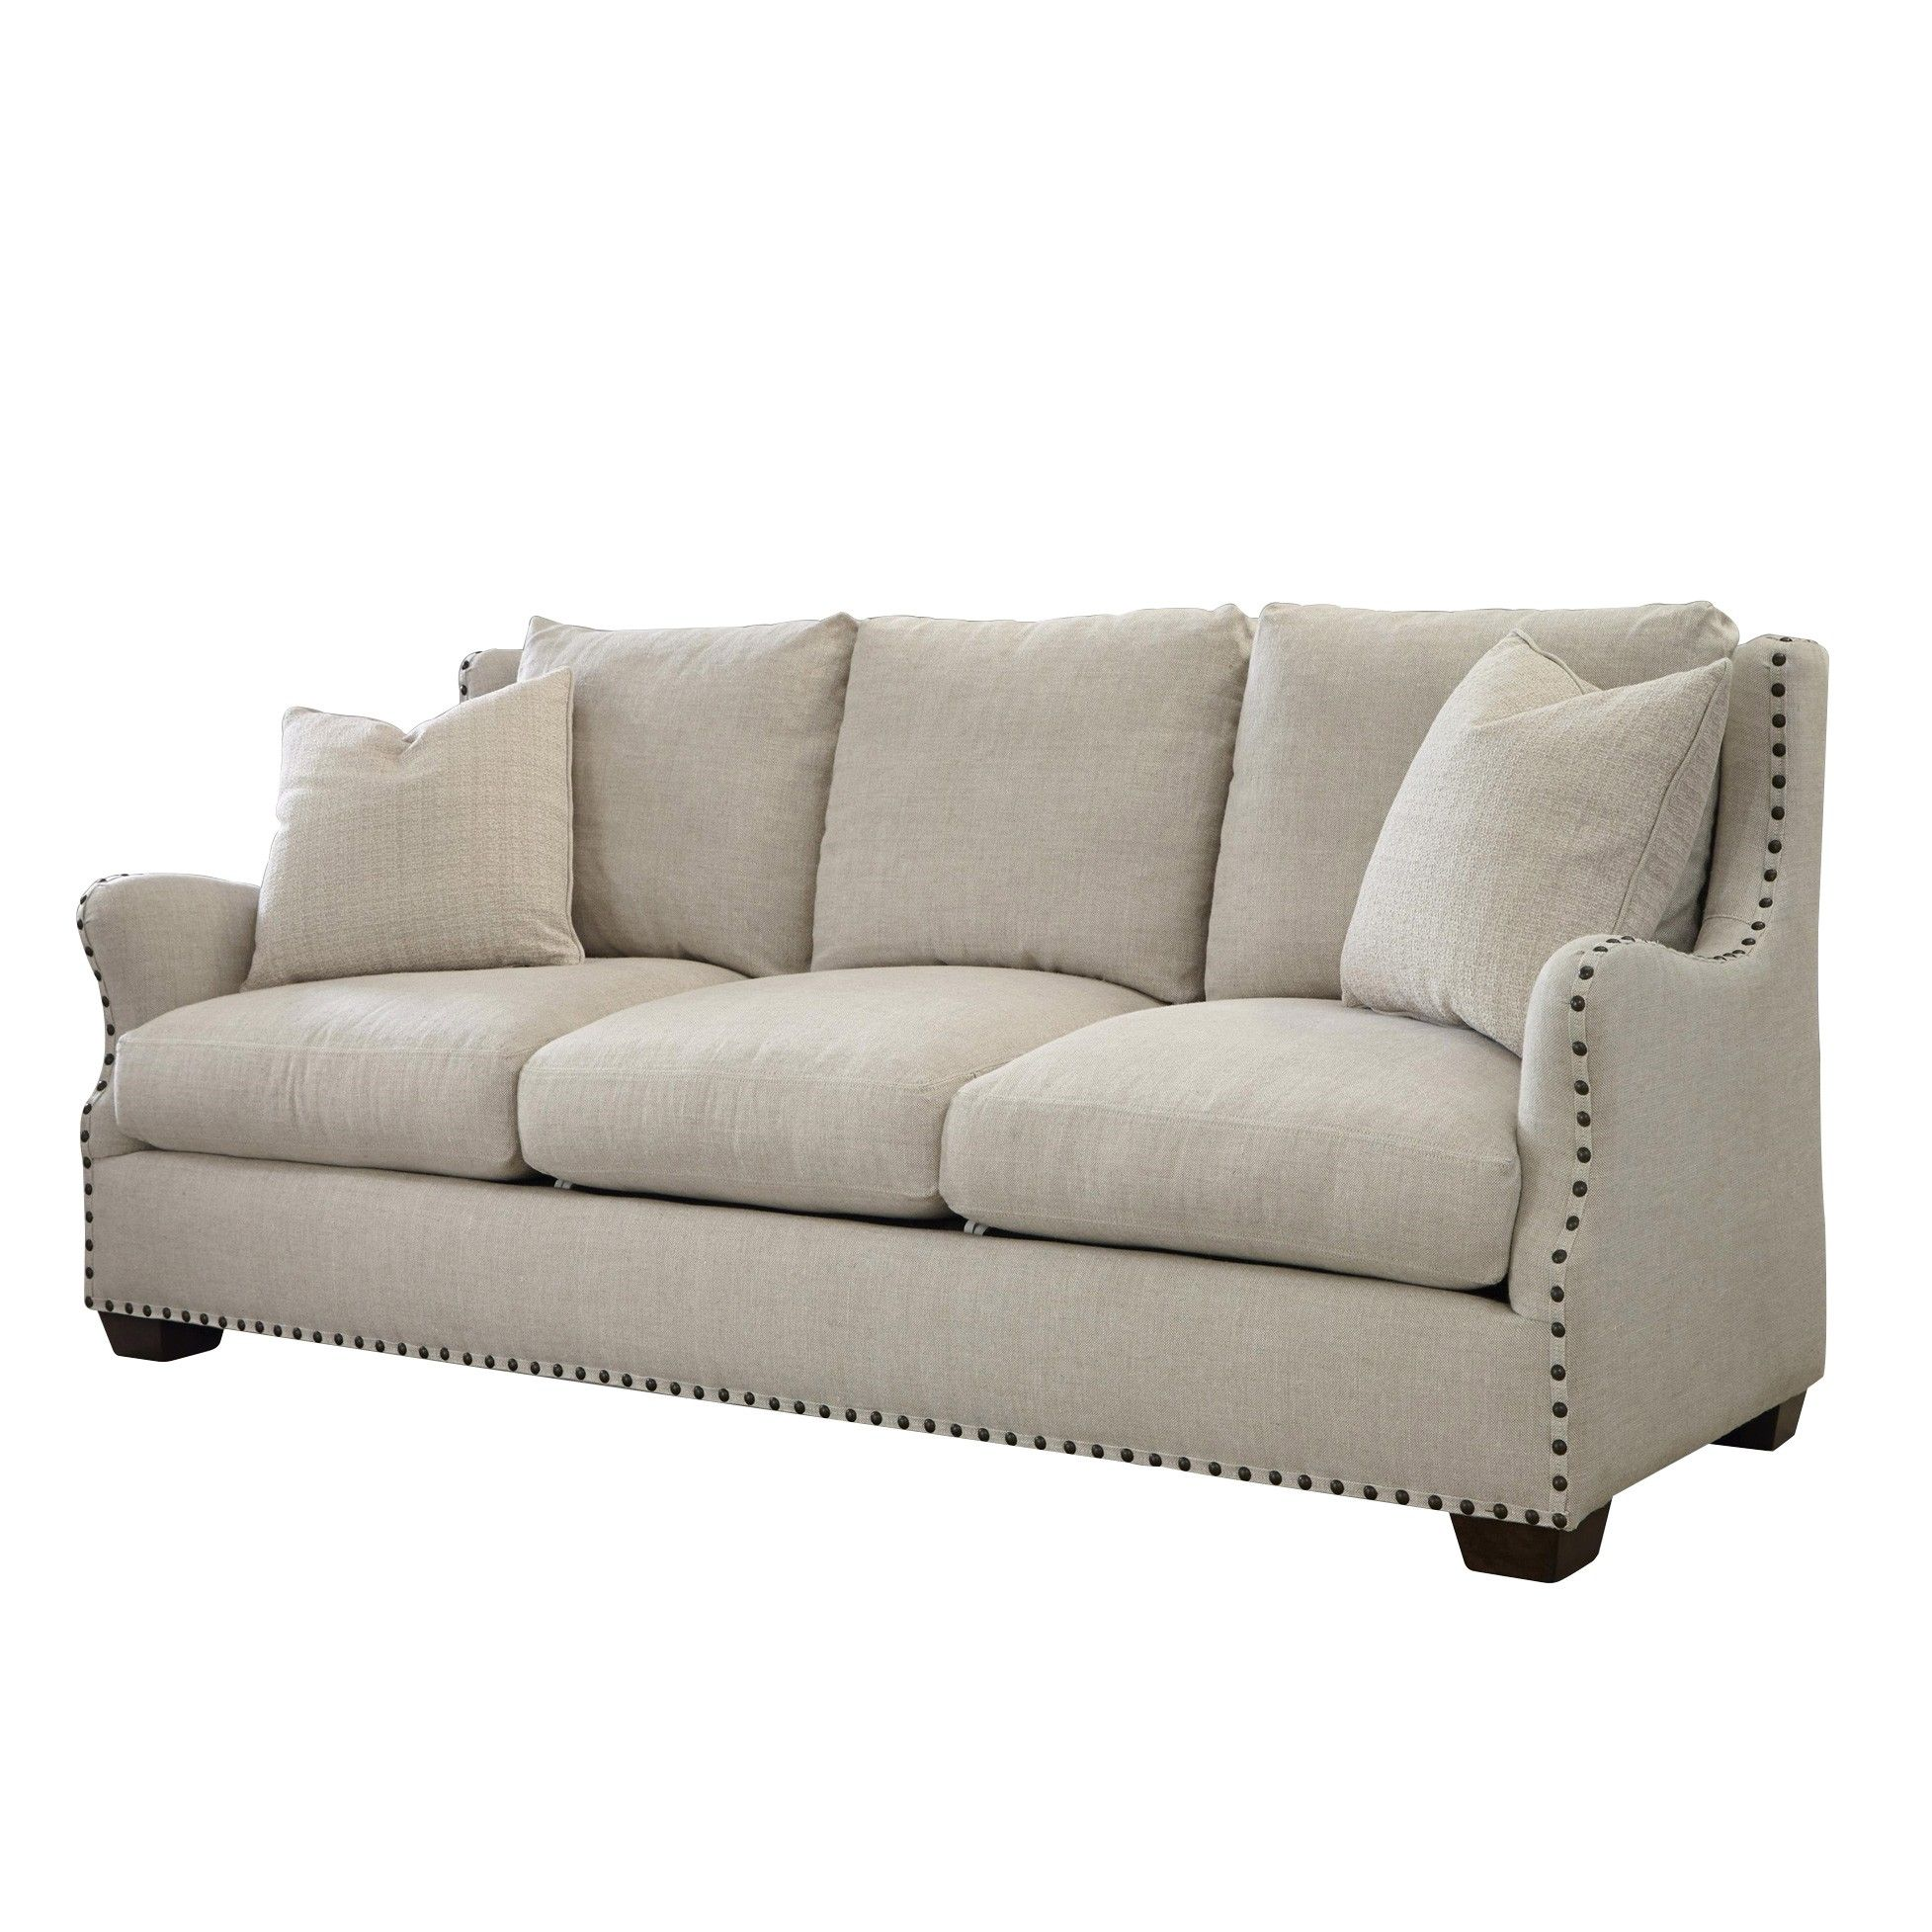 Shop For Universal Furniture Connor Sofa And Other Living Room Sofas At Howell In Beaumont Nederland TX Lake Charles LA